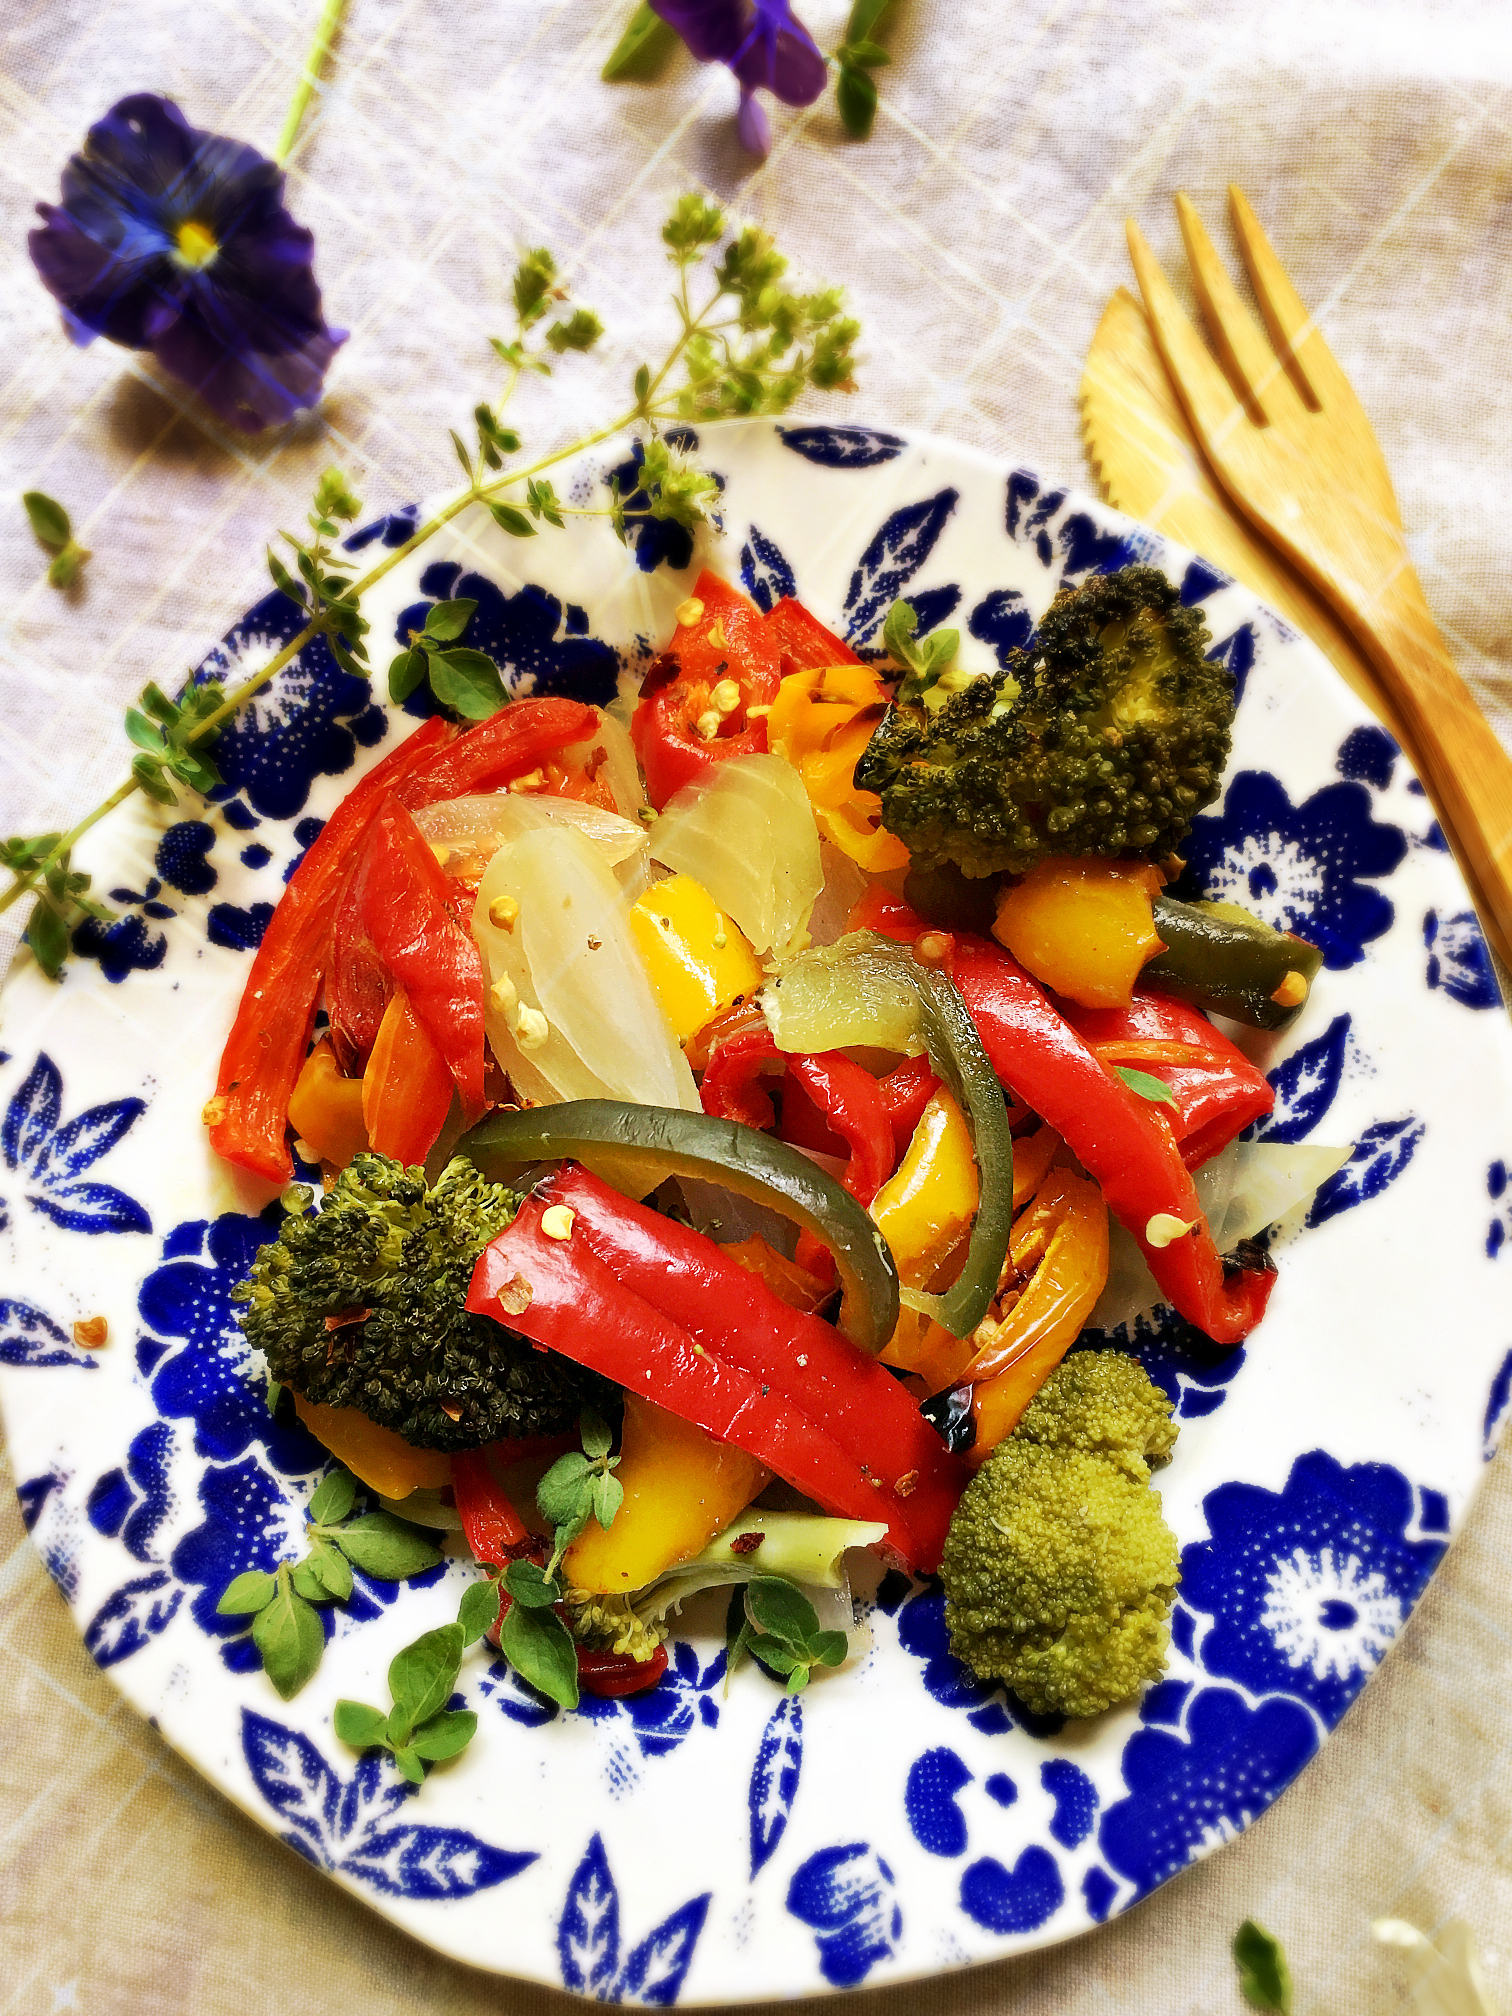 ©Roasted Vegetable Medley by Dena T Bray